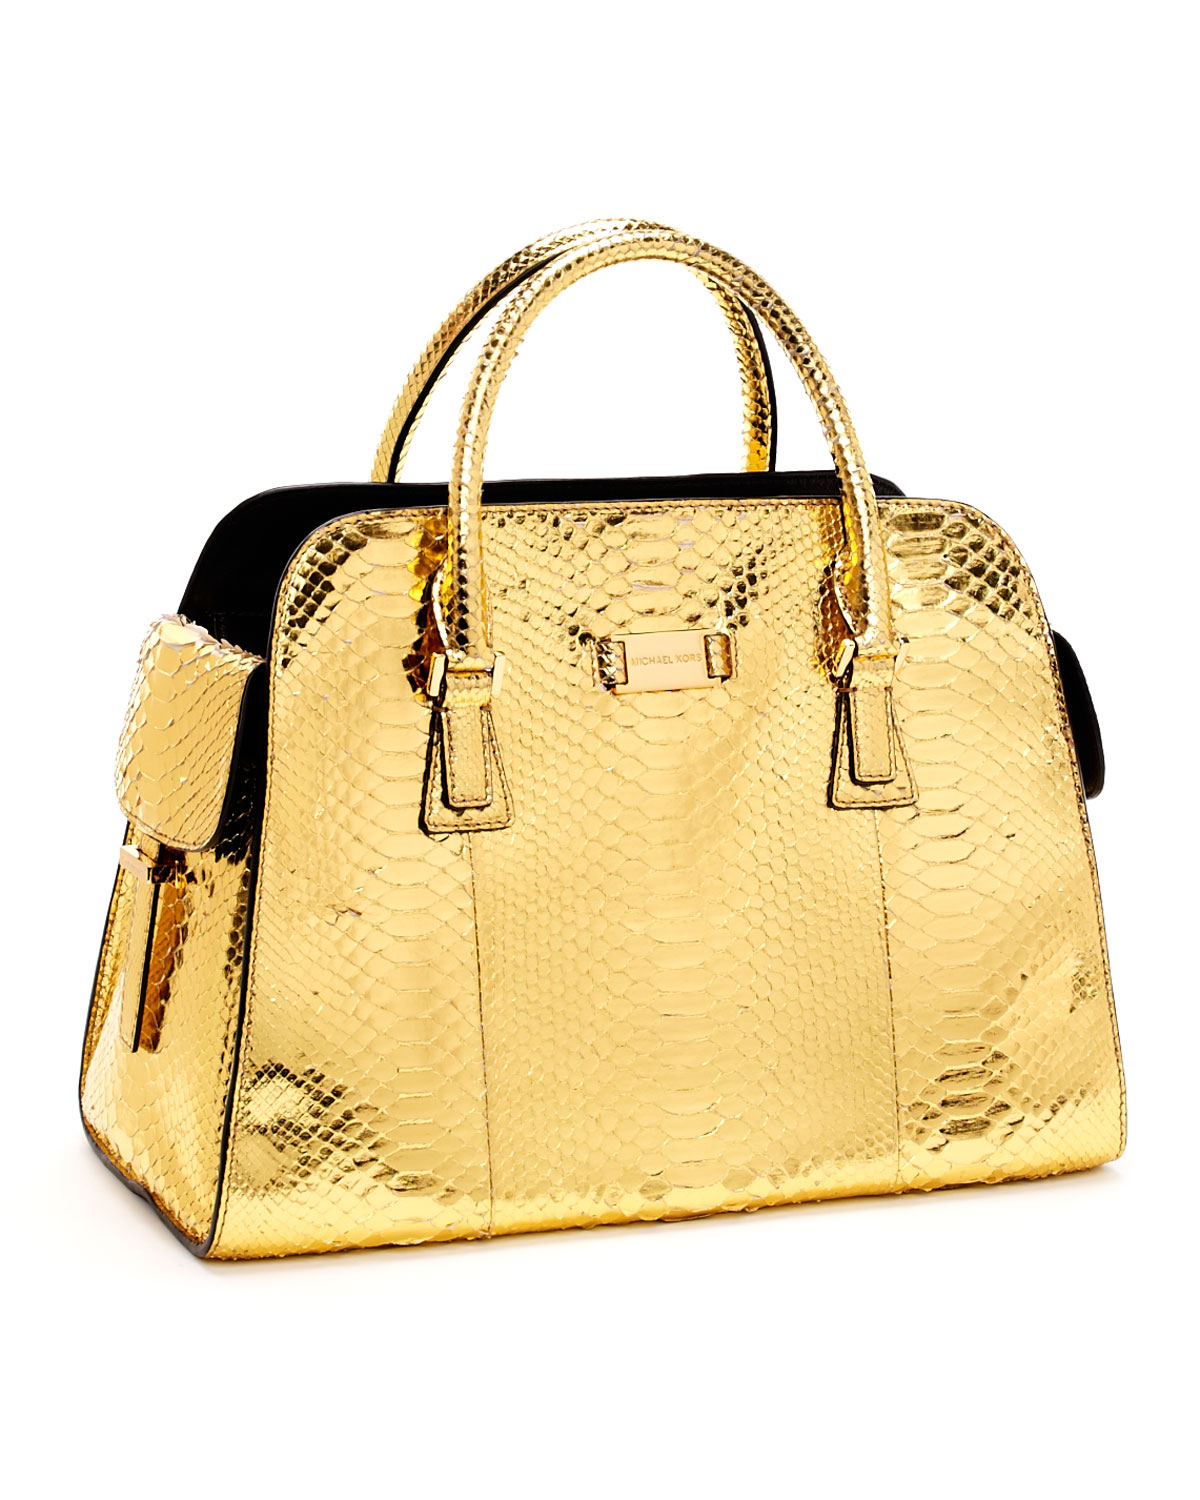 c8afe1a497dd Michael Kors Gia Satchel, Gold Python in Metallic - Lyst